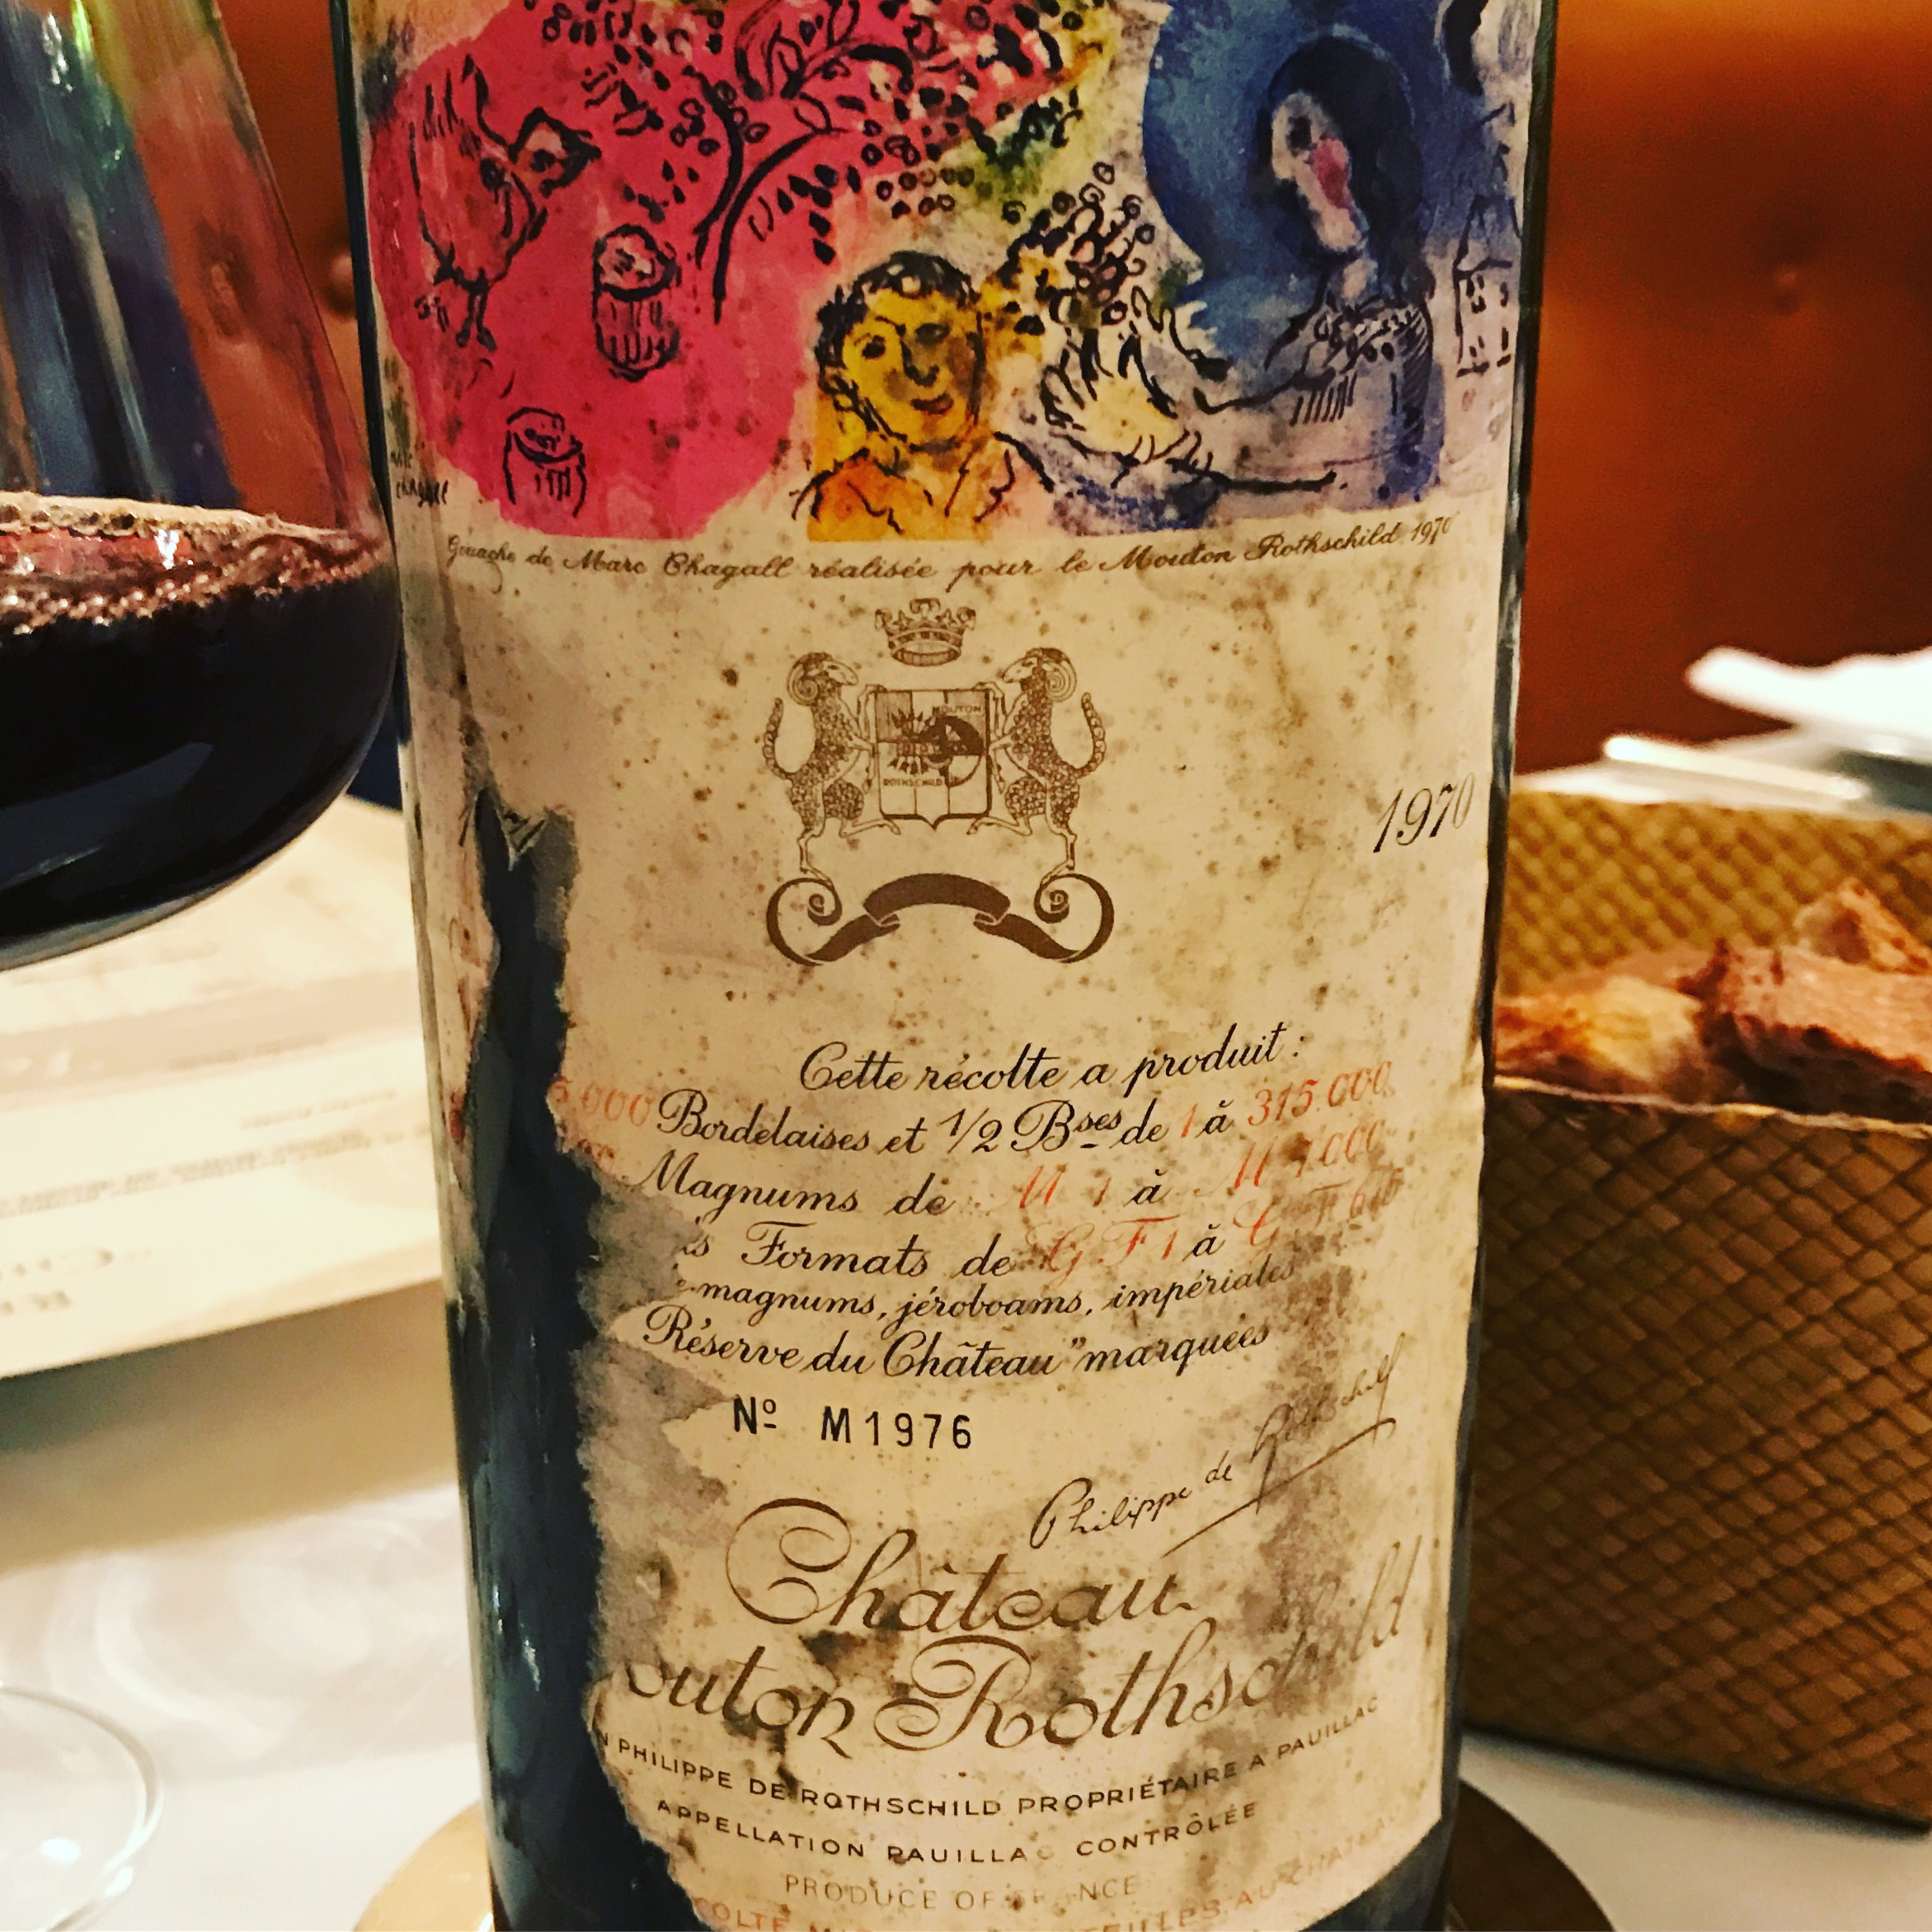 Mouton Rothschild 1970 to celebrate my birth year (my year stinks for wine)